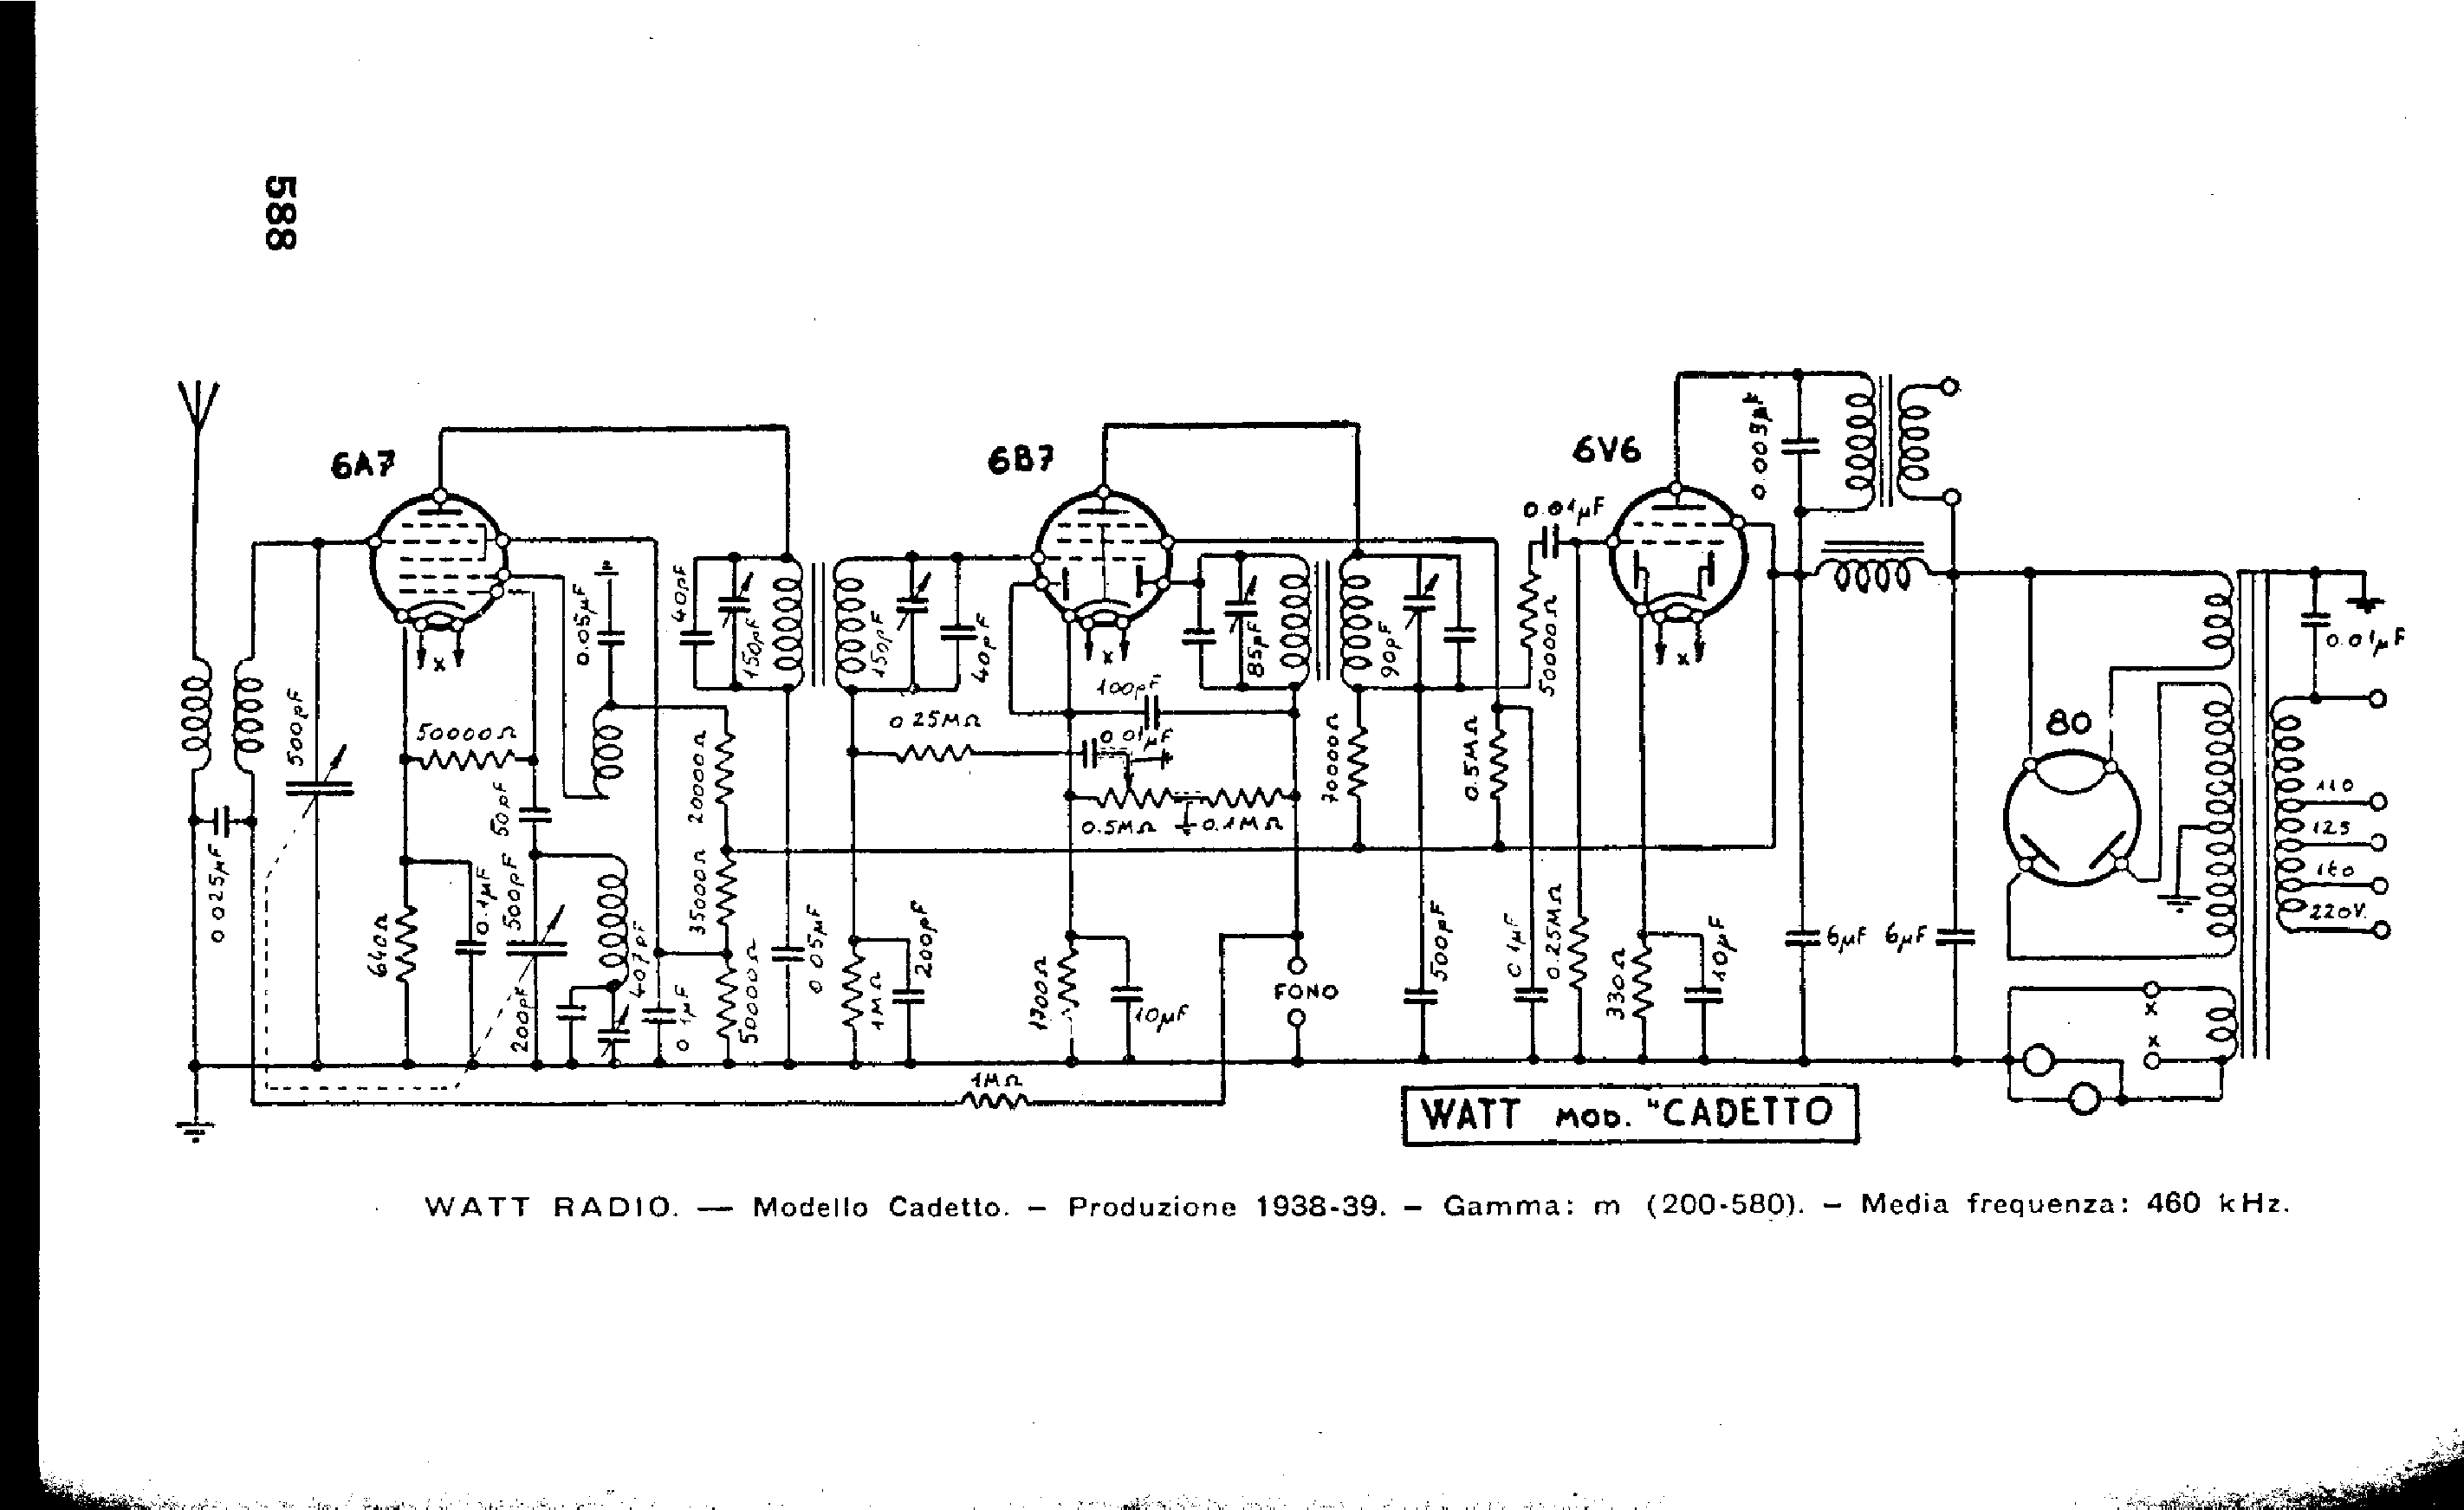 WATT RADIO-CADETTO Service Manual download, schematics